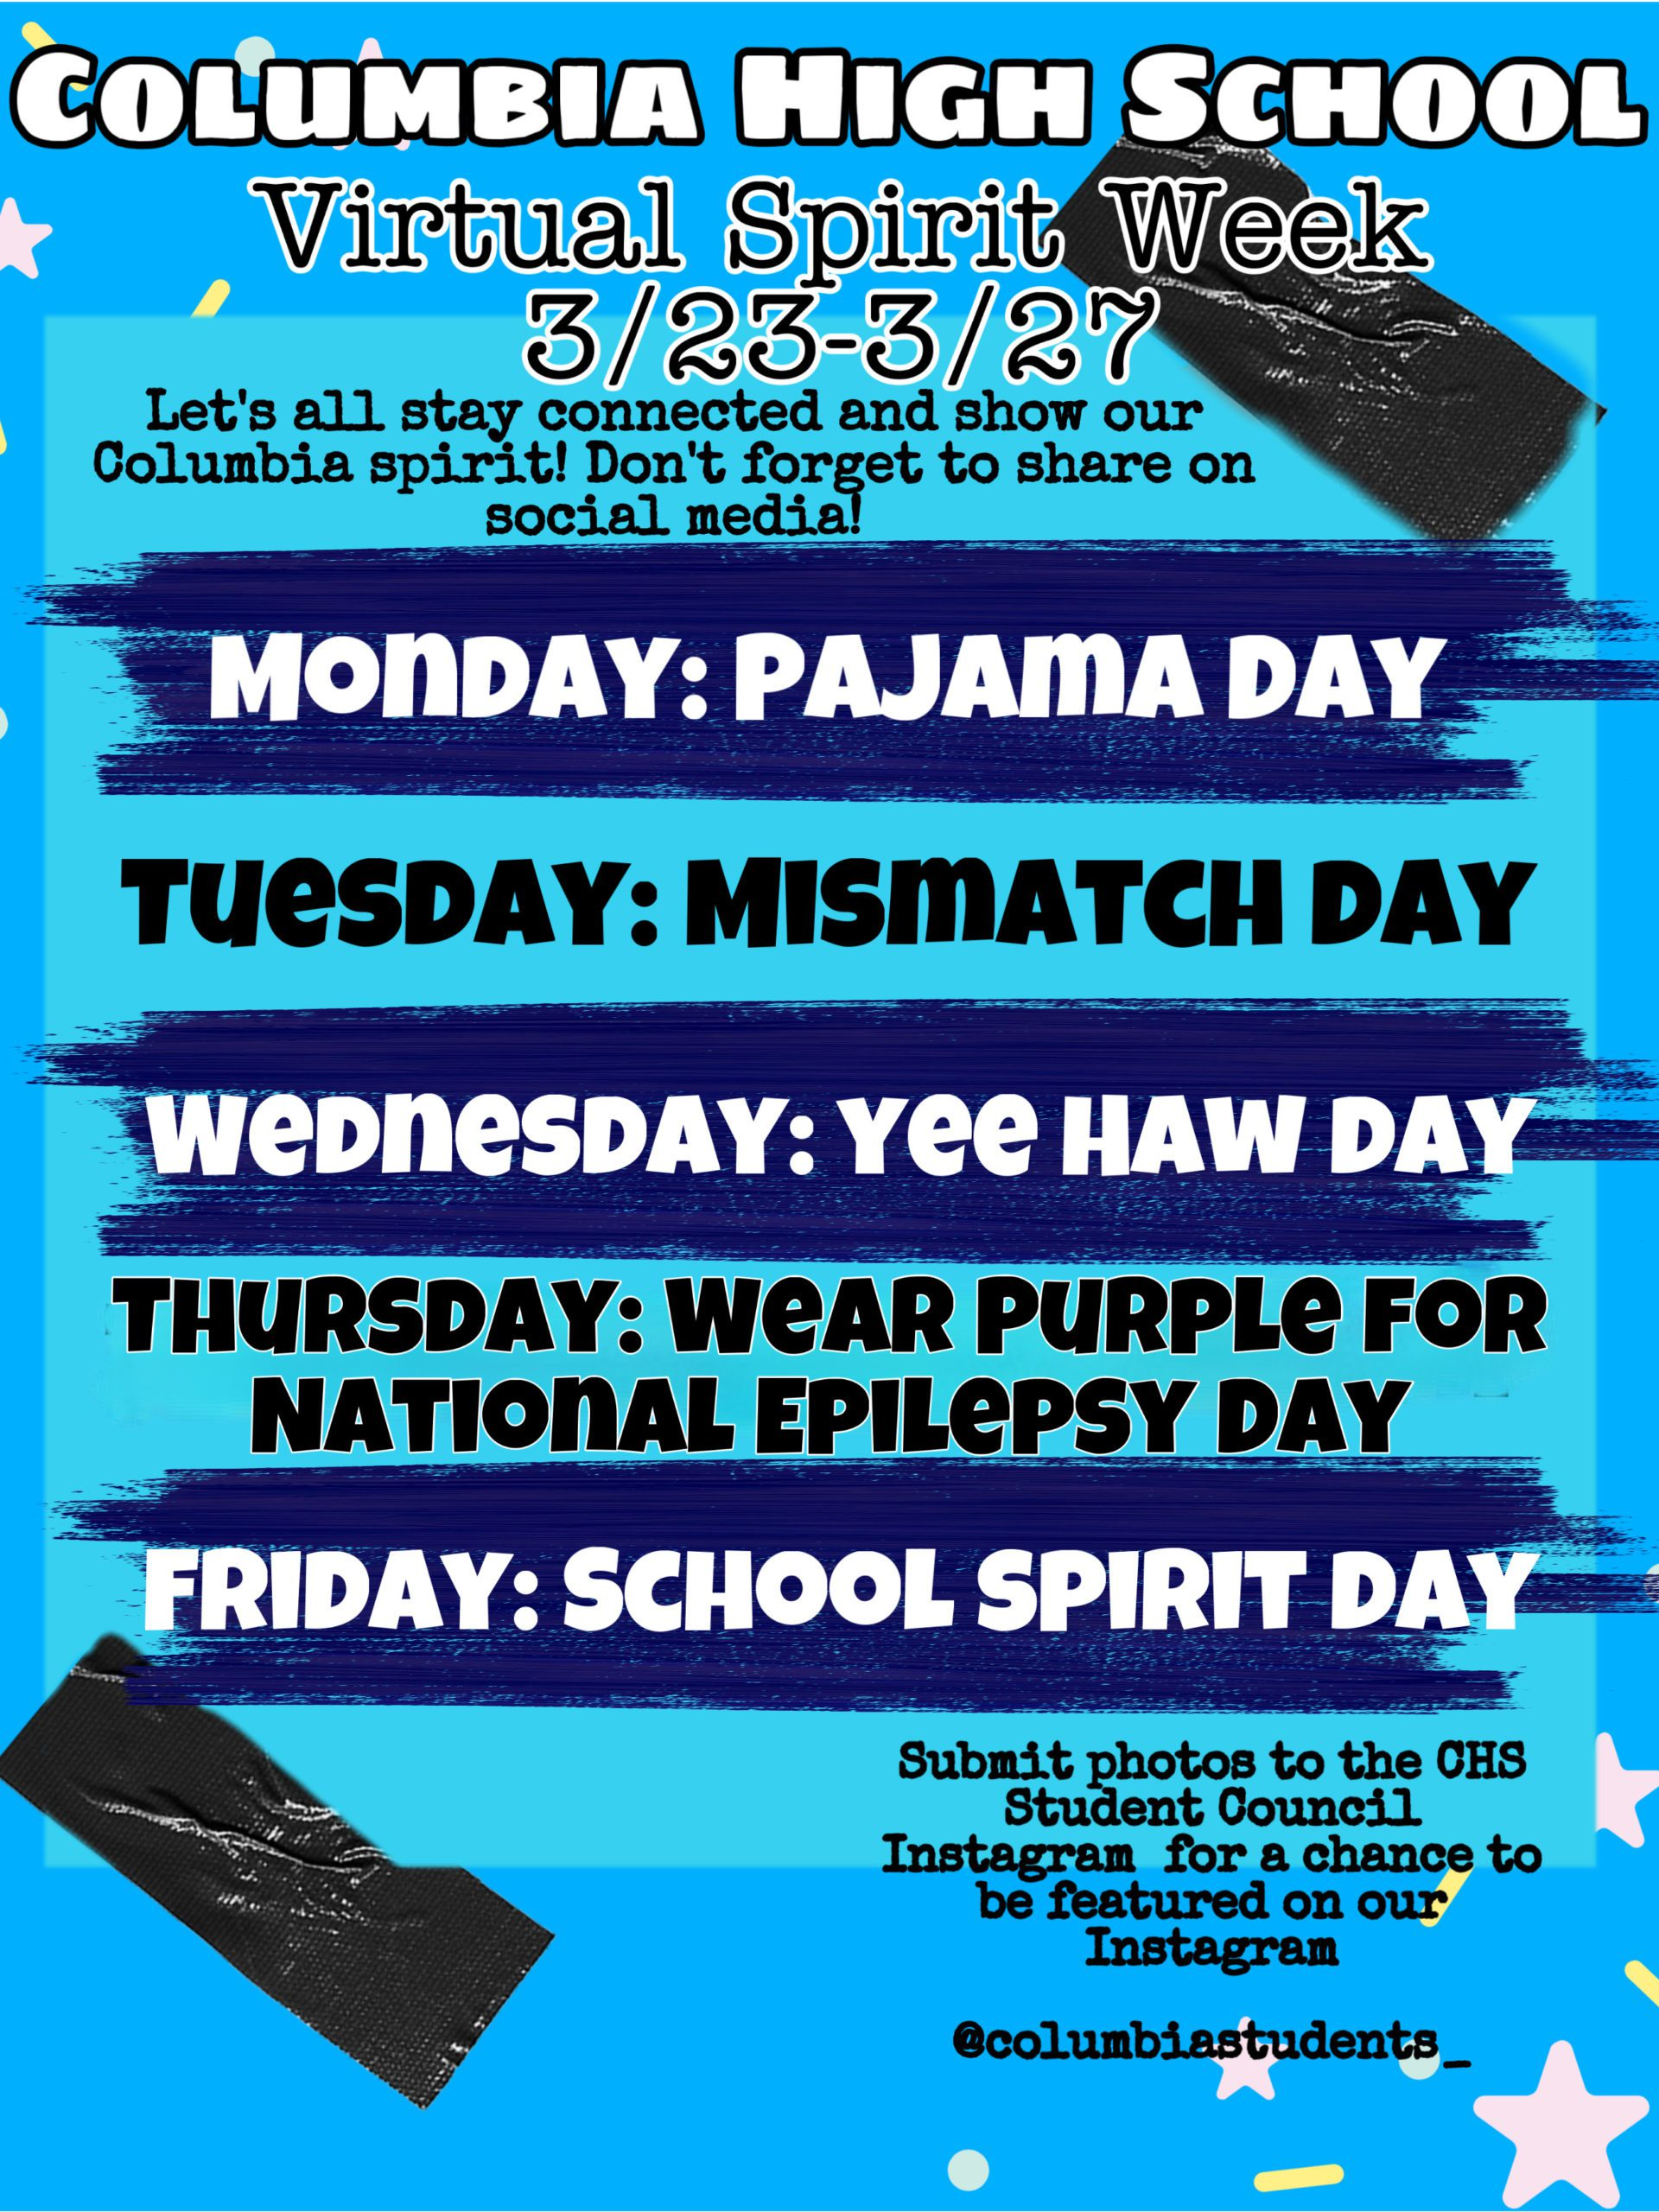 Columbia Virtual Spirit Week schedule